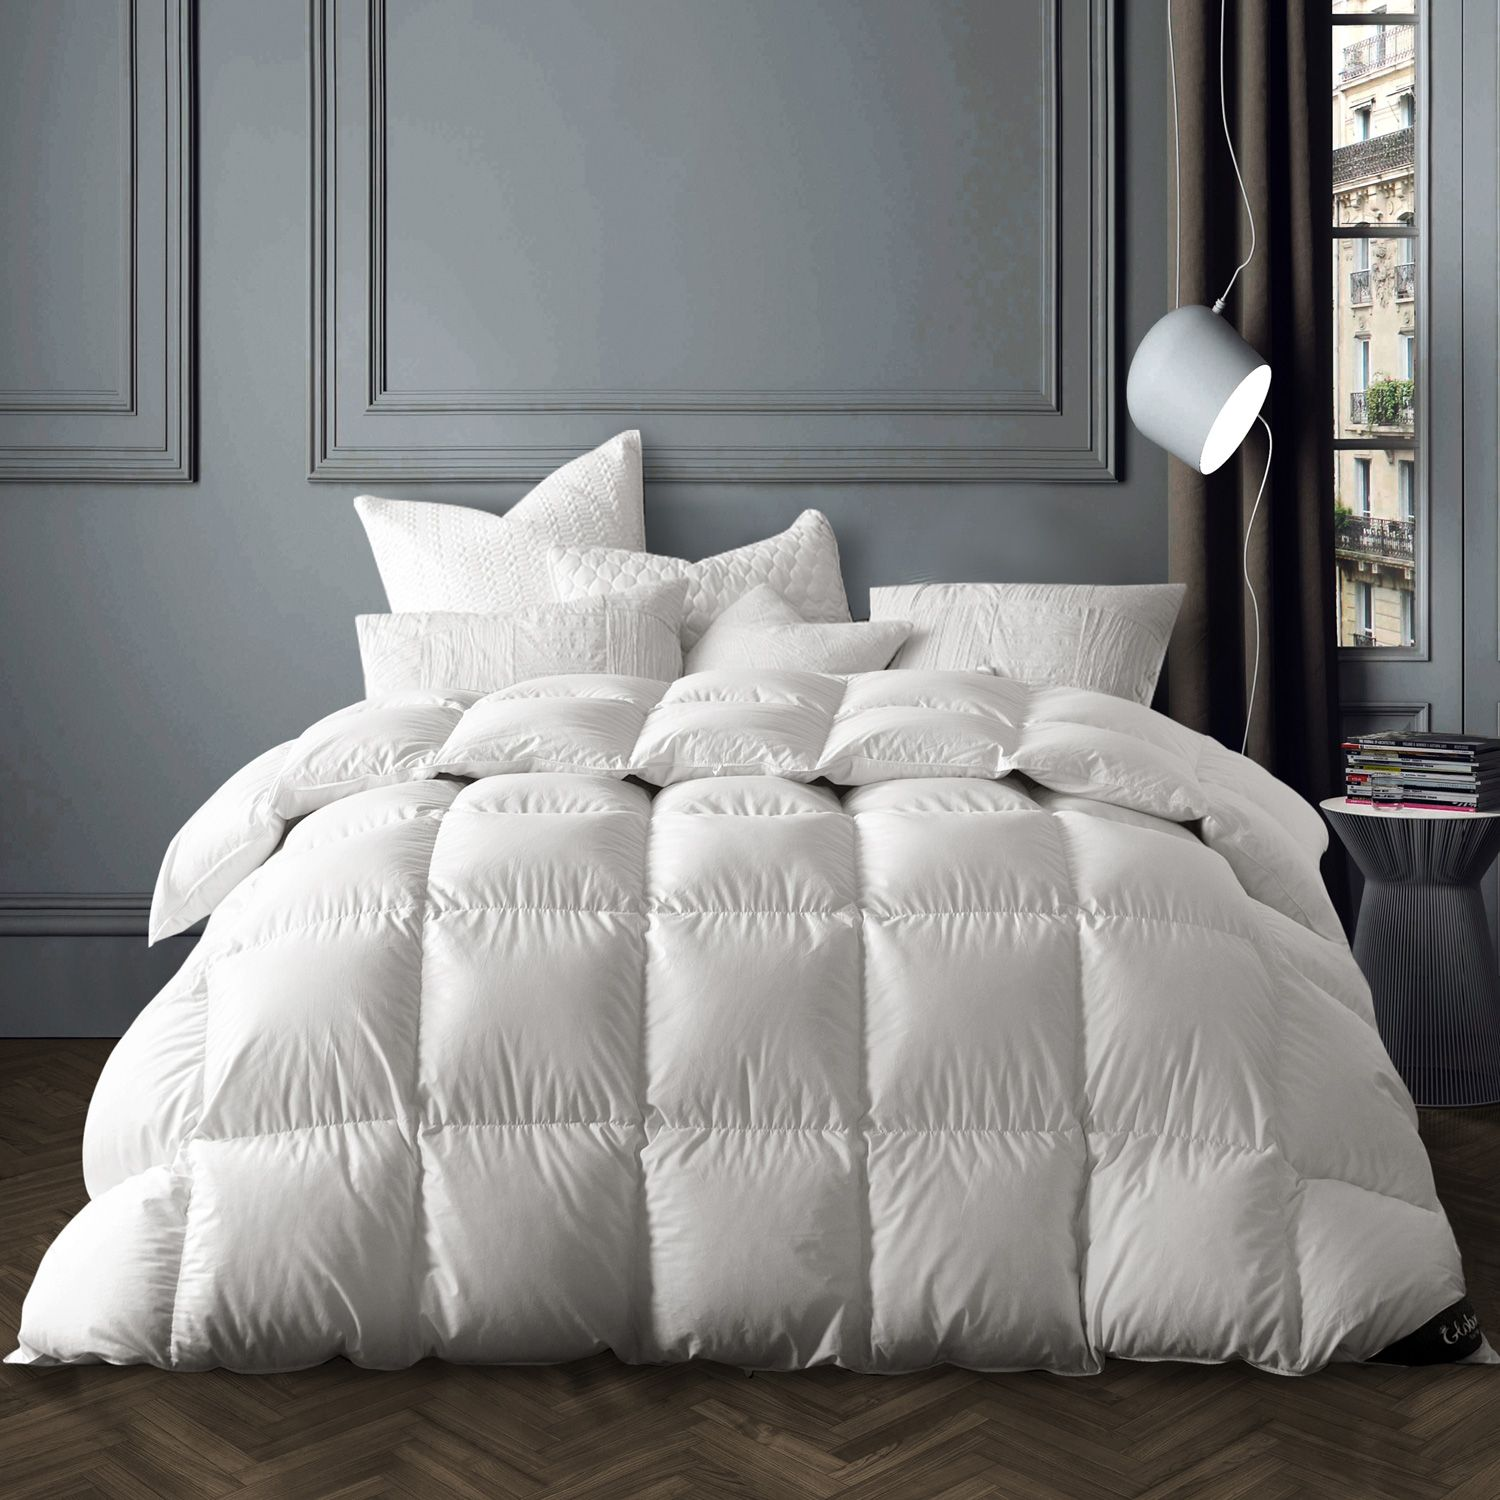 Globon Goose Down Comforter Winter (With images)